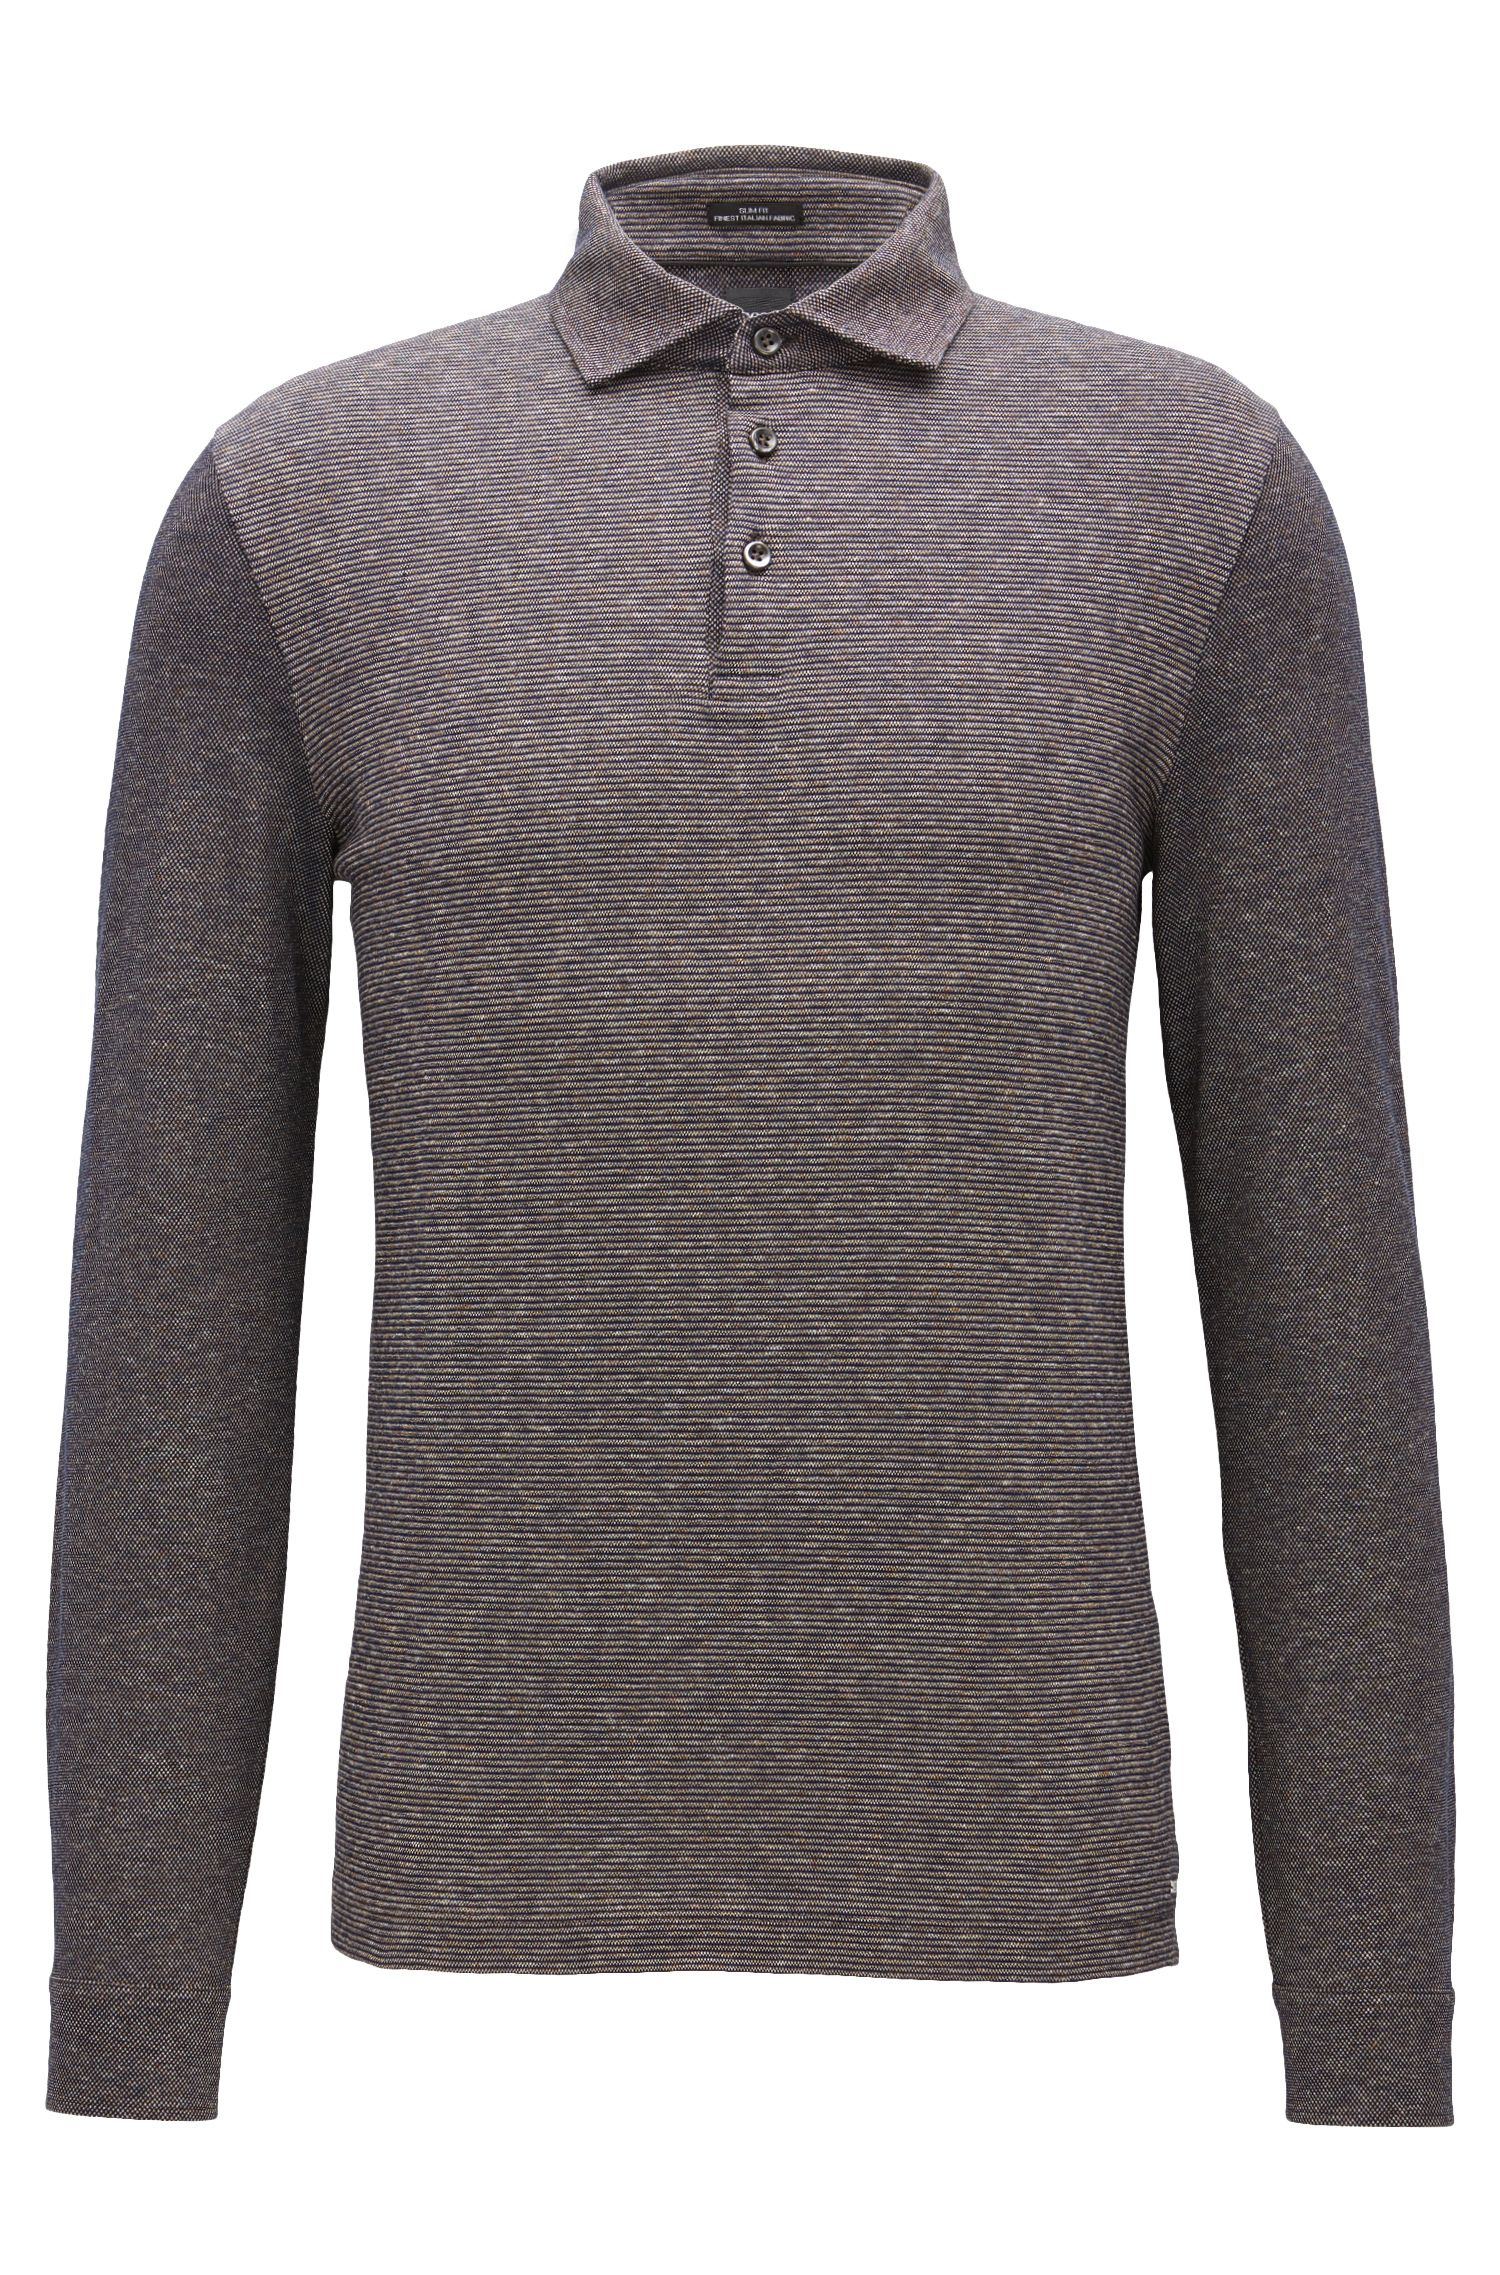 Slim-fit long-sleeved cotton polo shirt with striped jacquard panel